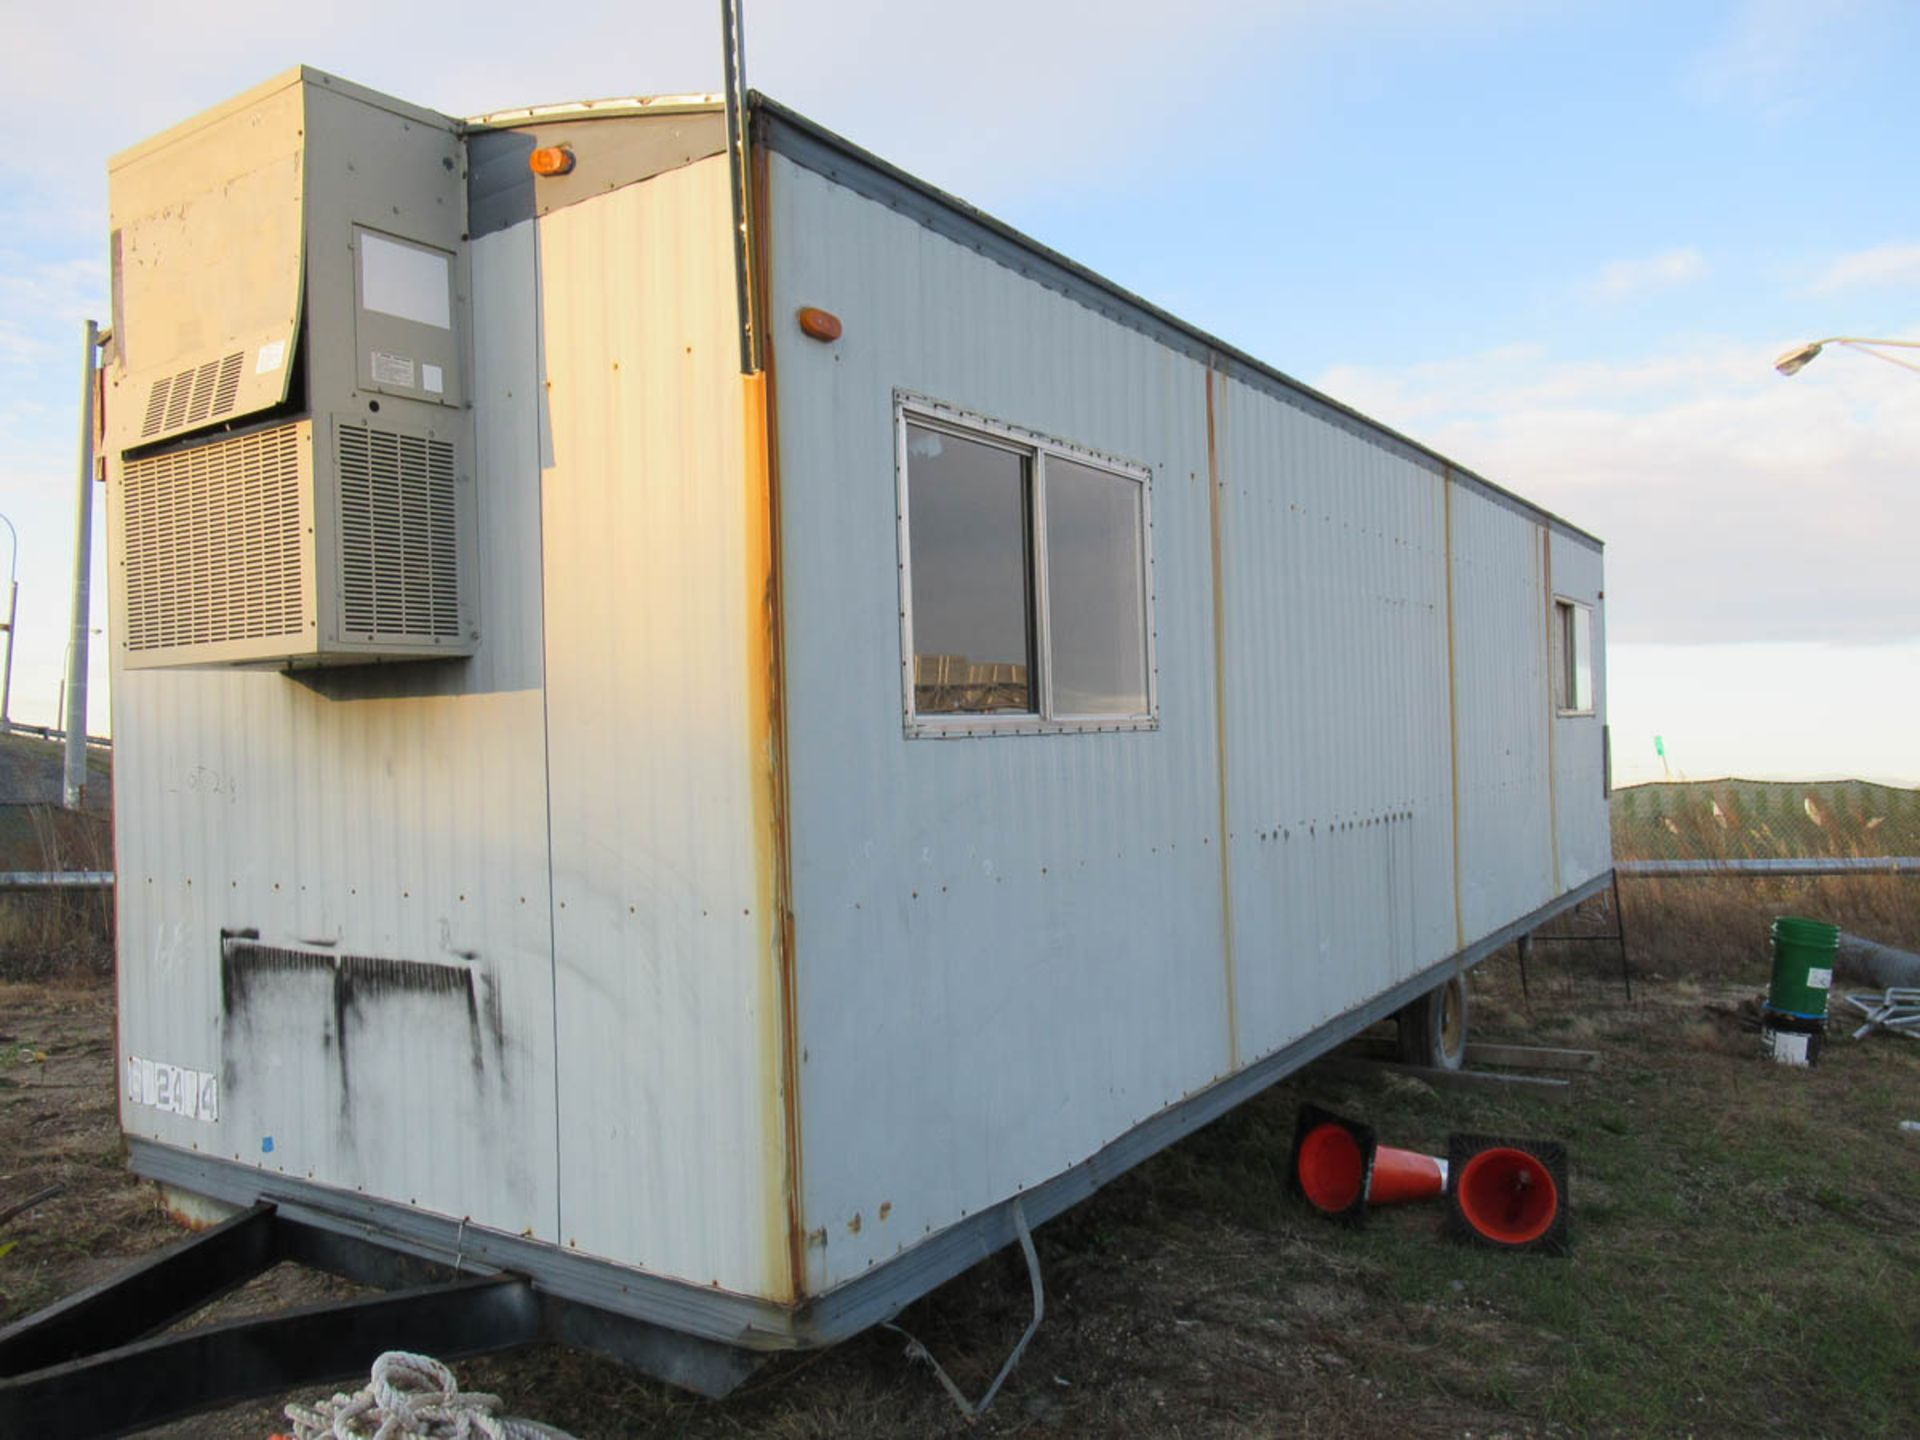 APPROXIMATELY 28' OFFICE TRAILER [LOCATED @ MARINE PARKWAY BRIDGE - QUEENS SIDE] - Image 4 of 9